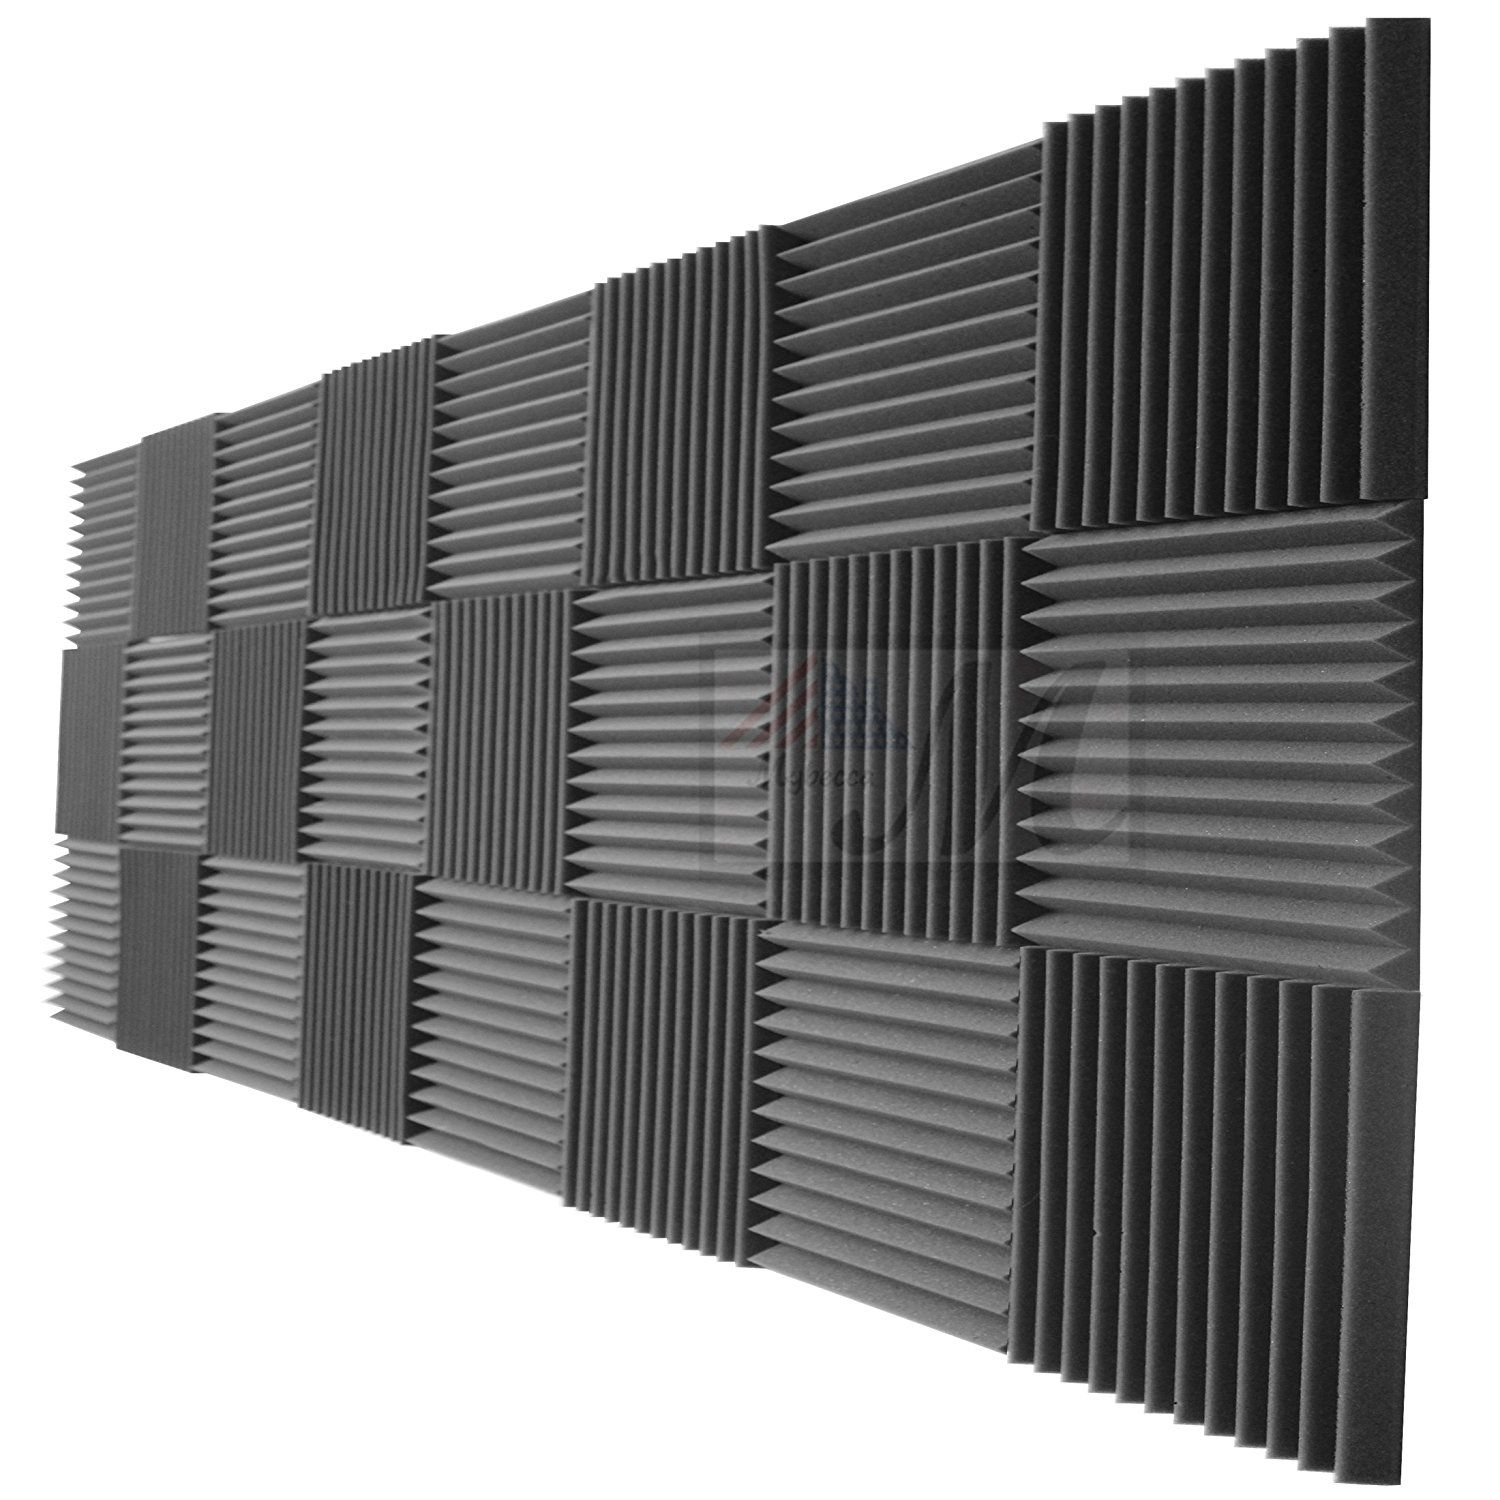 Mybecca 24 Pack Acoustic Foam Panels 2 X 12 X 12 Studio Soundproofing Wedges 24 Square Feet Charc Studio Soundproofing Sound Proofing Soundproofing Walls